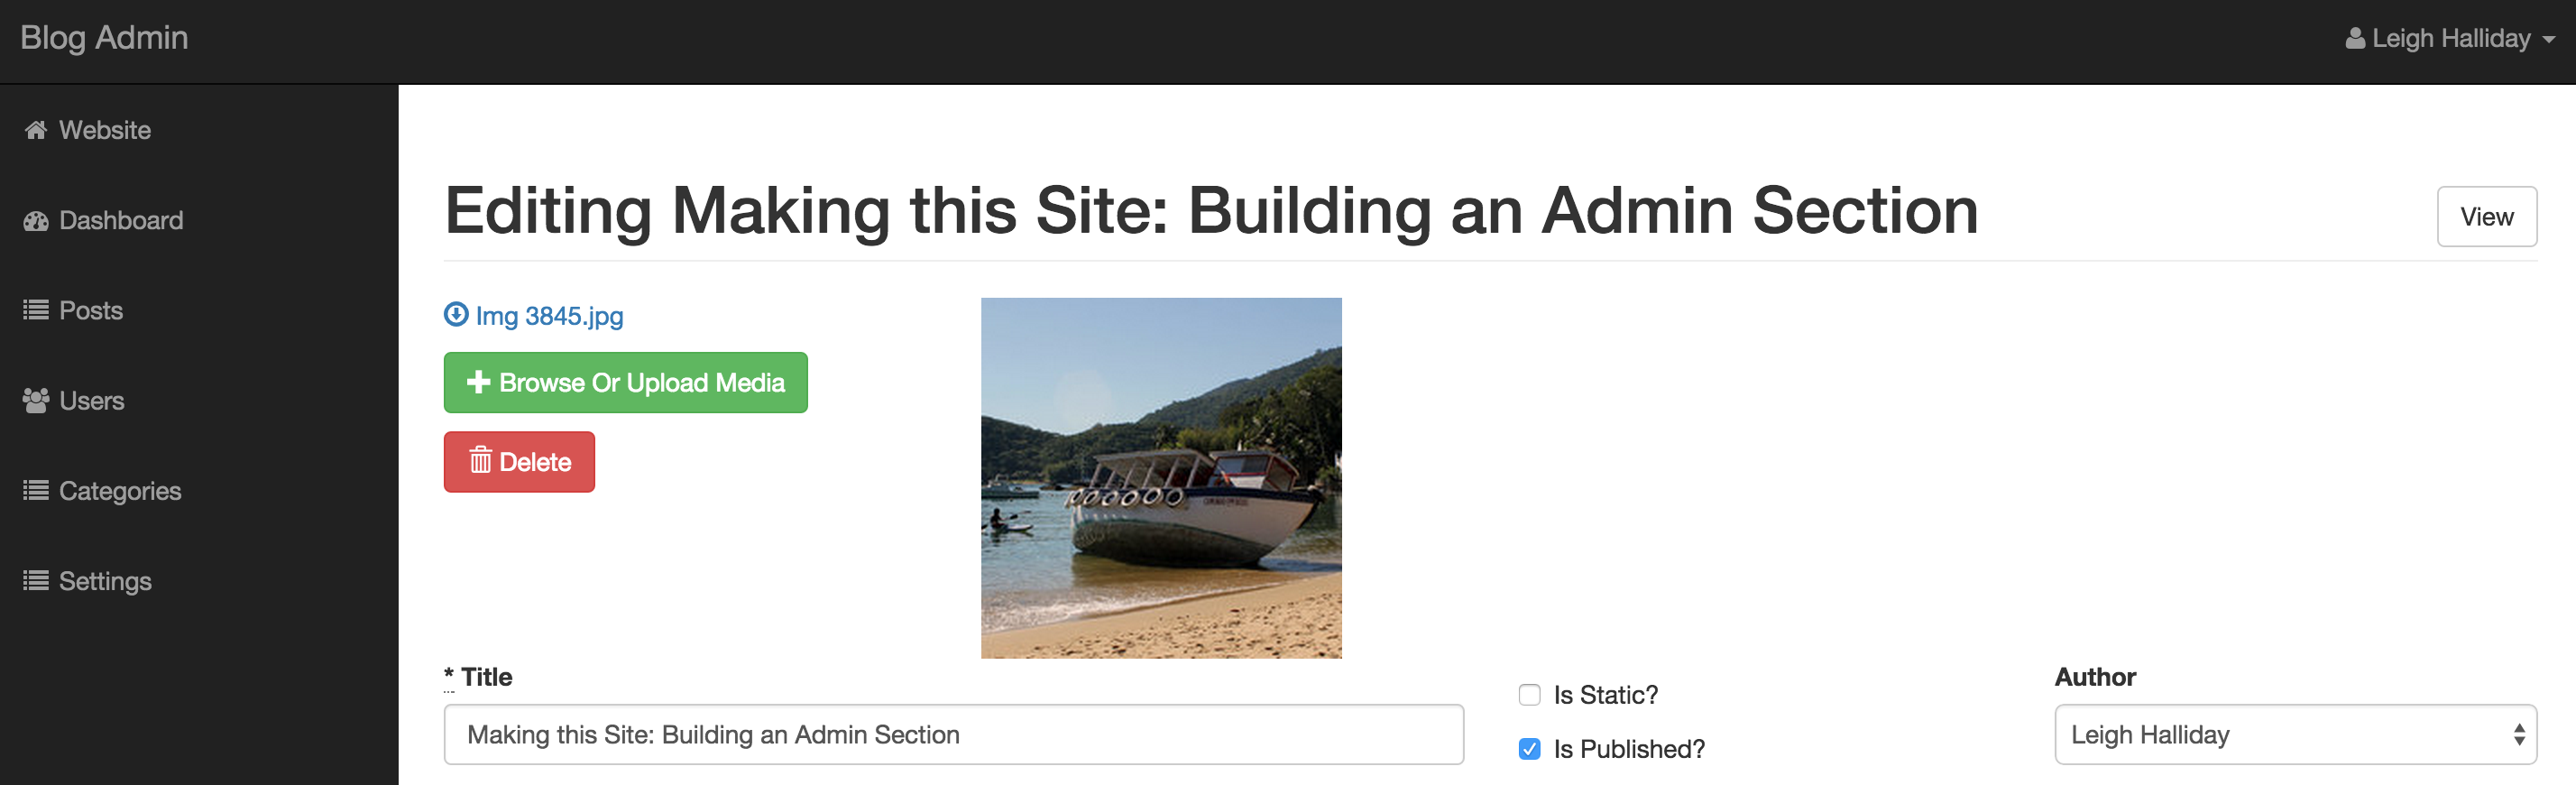 Building an admin section in Rails | Leigh Halliday